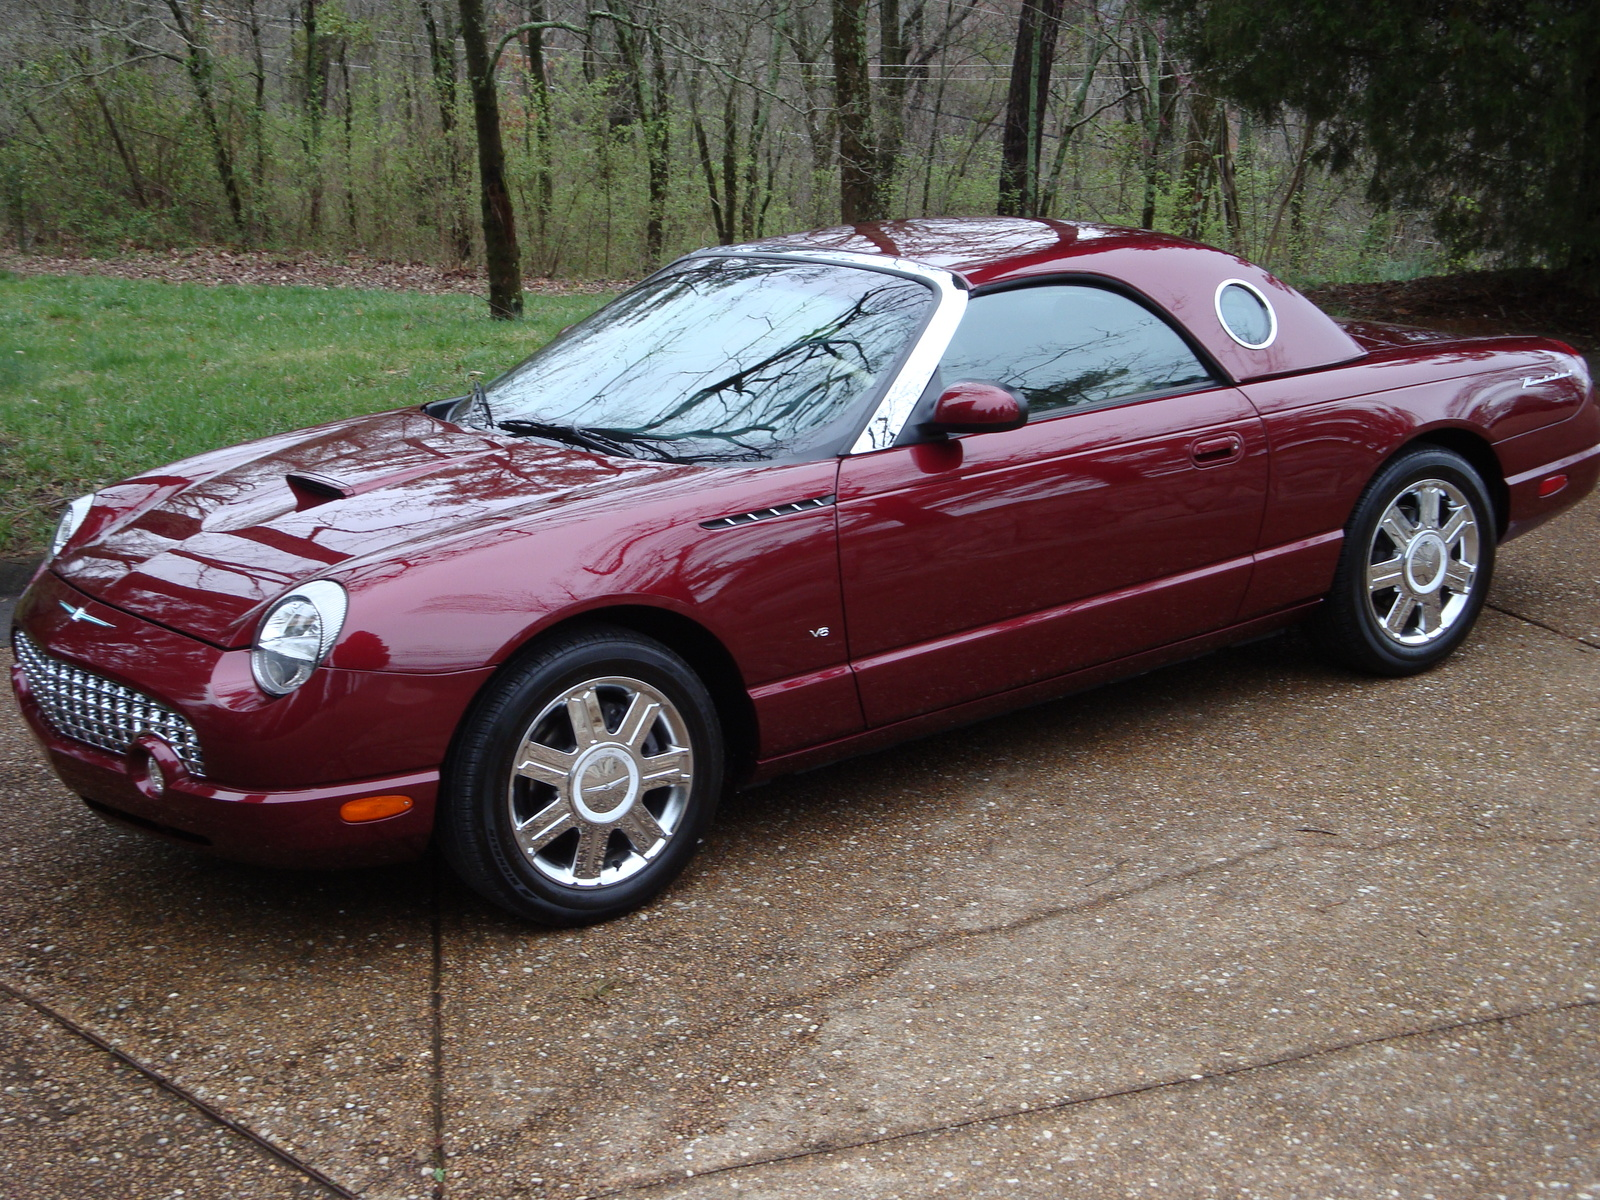 2004 Ford Thunderbird #2